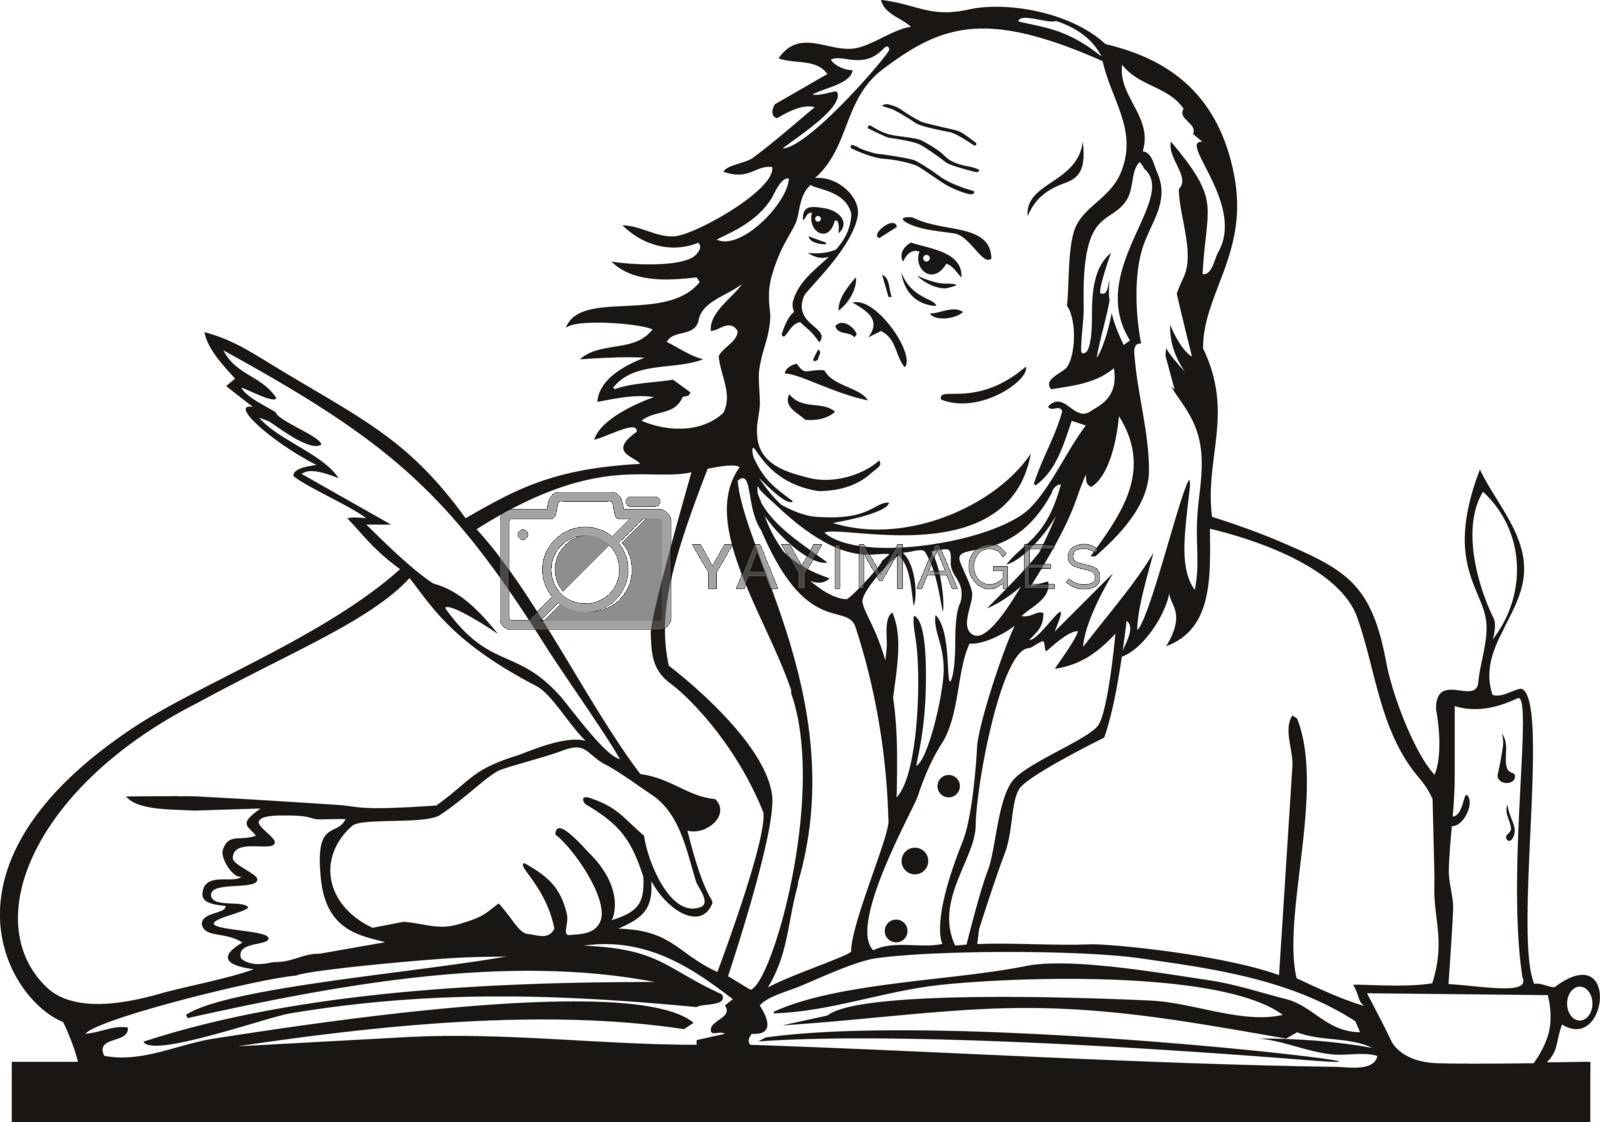 Retro style illustration of Benjamin Franklin, an American polymath and one of the Founding Fathers of the United States, as a writer writing with quill on isolated background done in black and white.